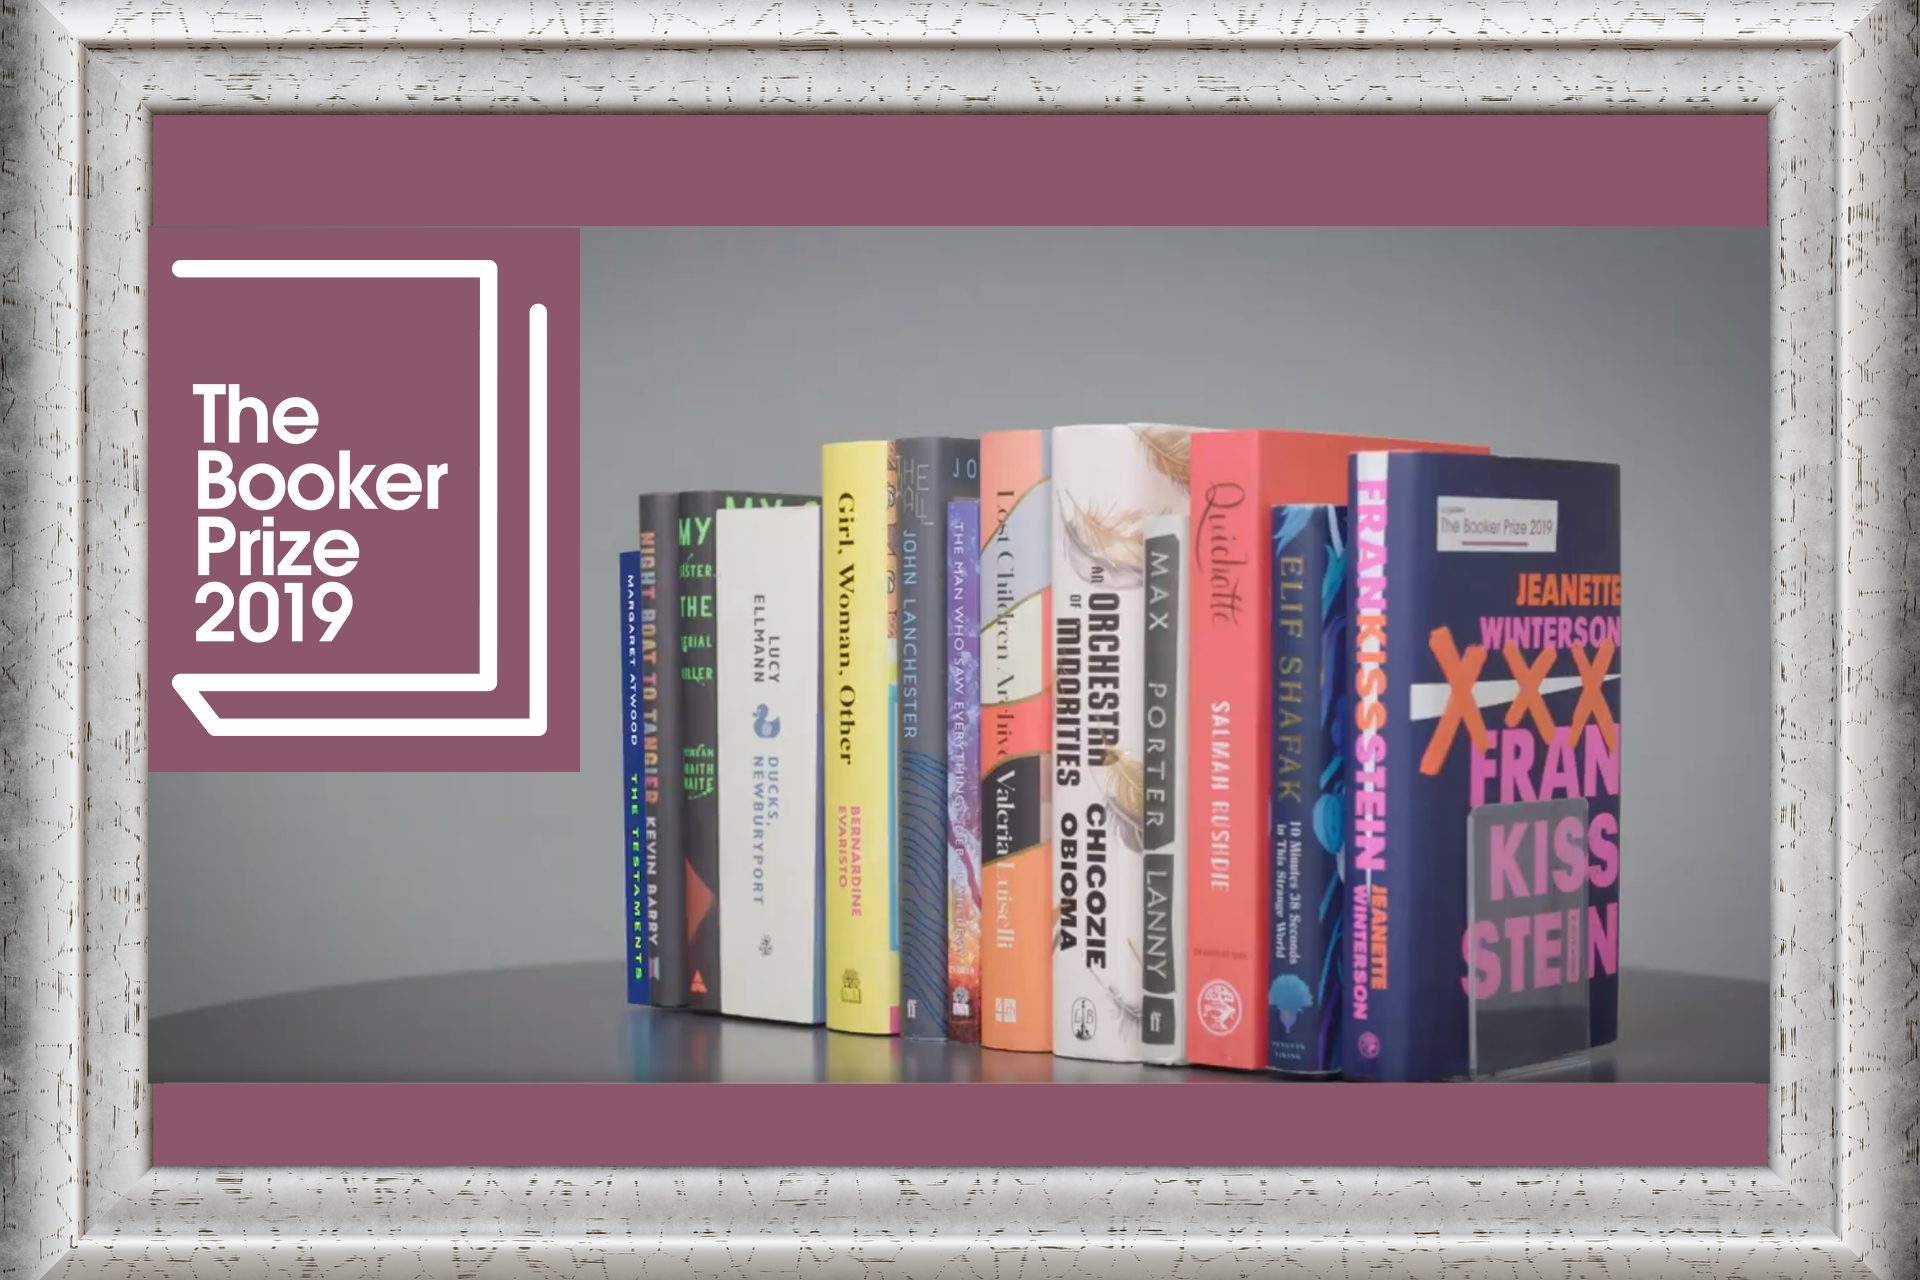 The Booker Prize 2019